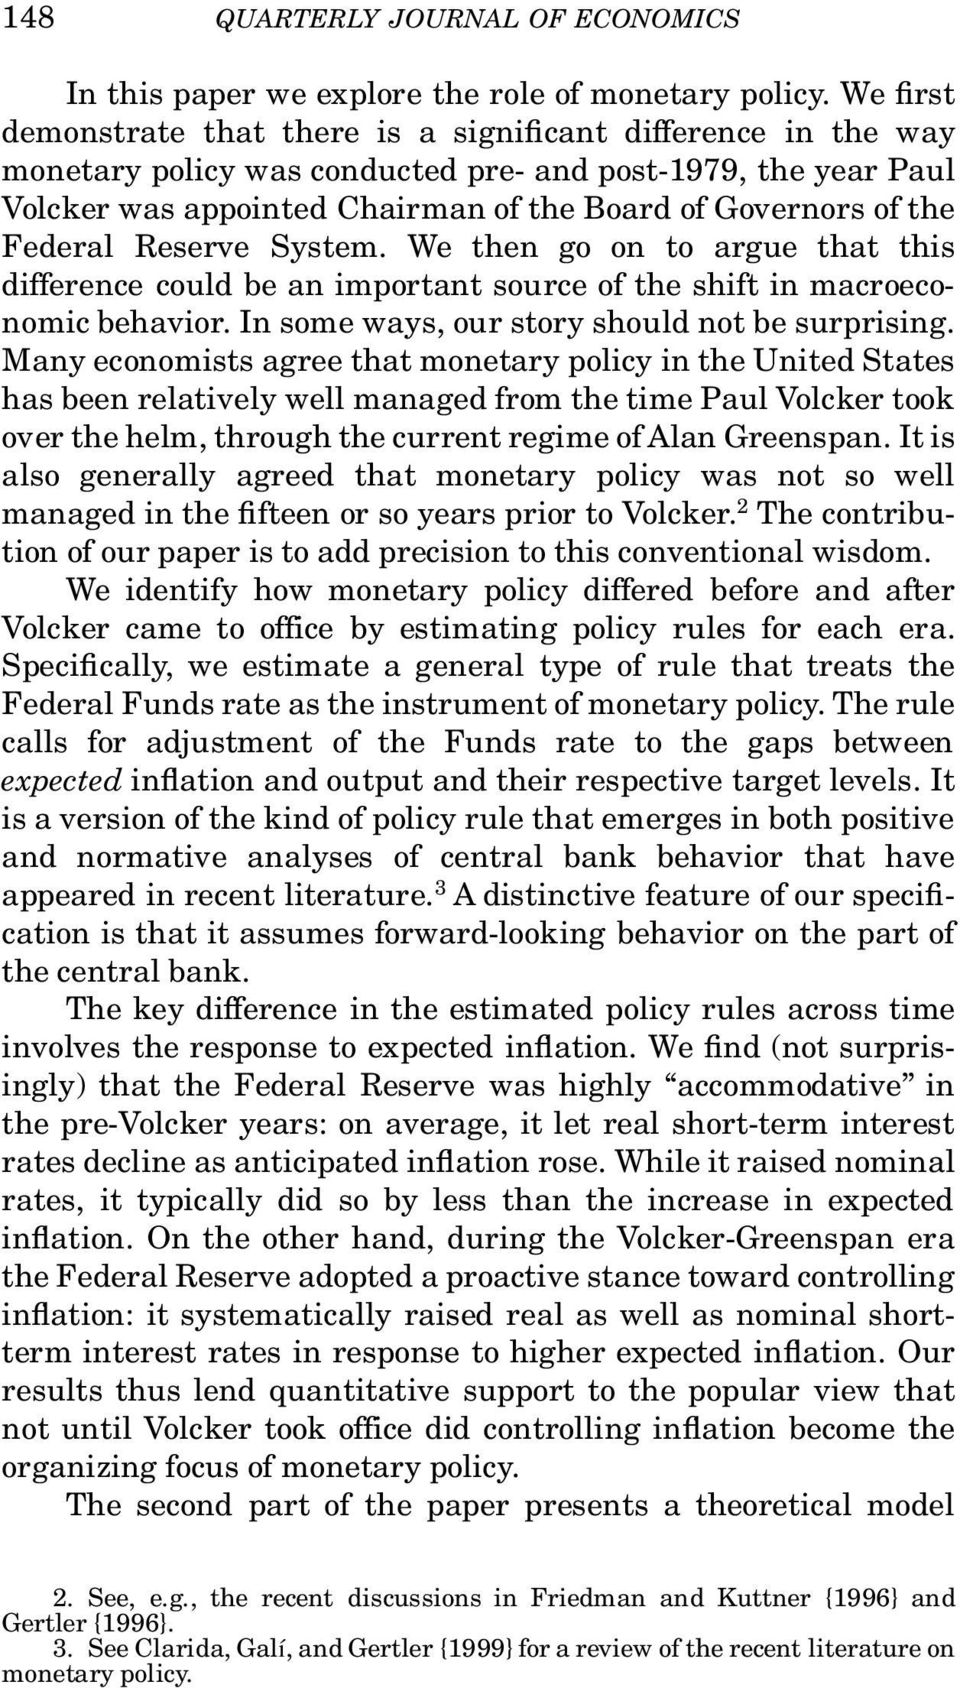 Federal Reserve System. We then go on to argue that this difference could be an important source of the shift in macroeconomic behavior. In some ways, our story should not be surprising.